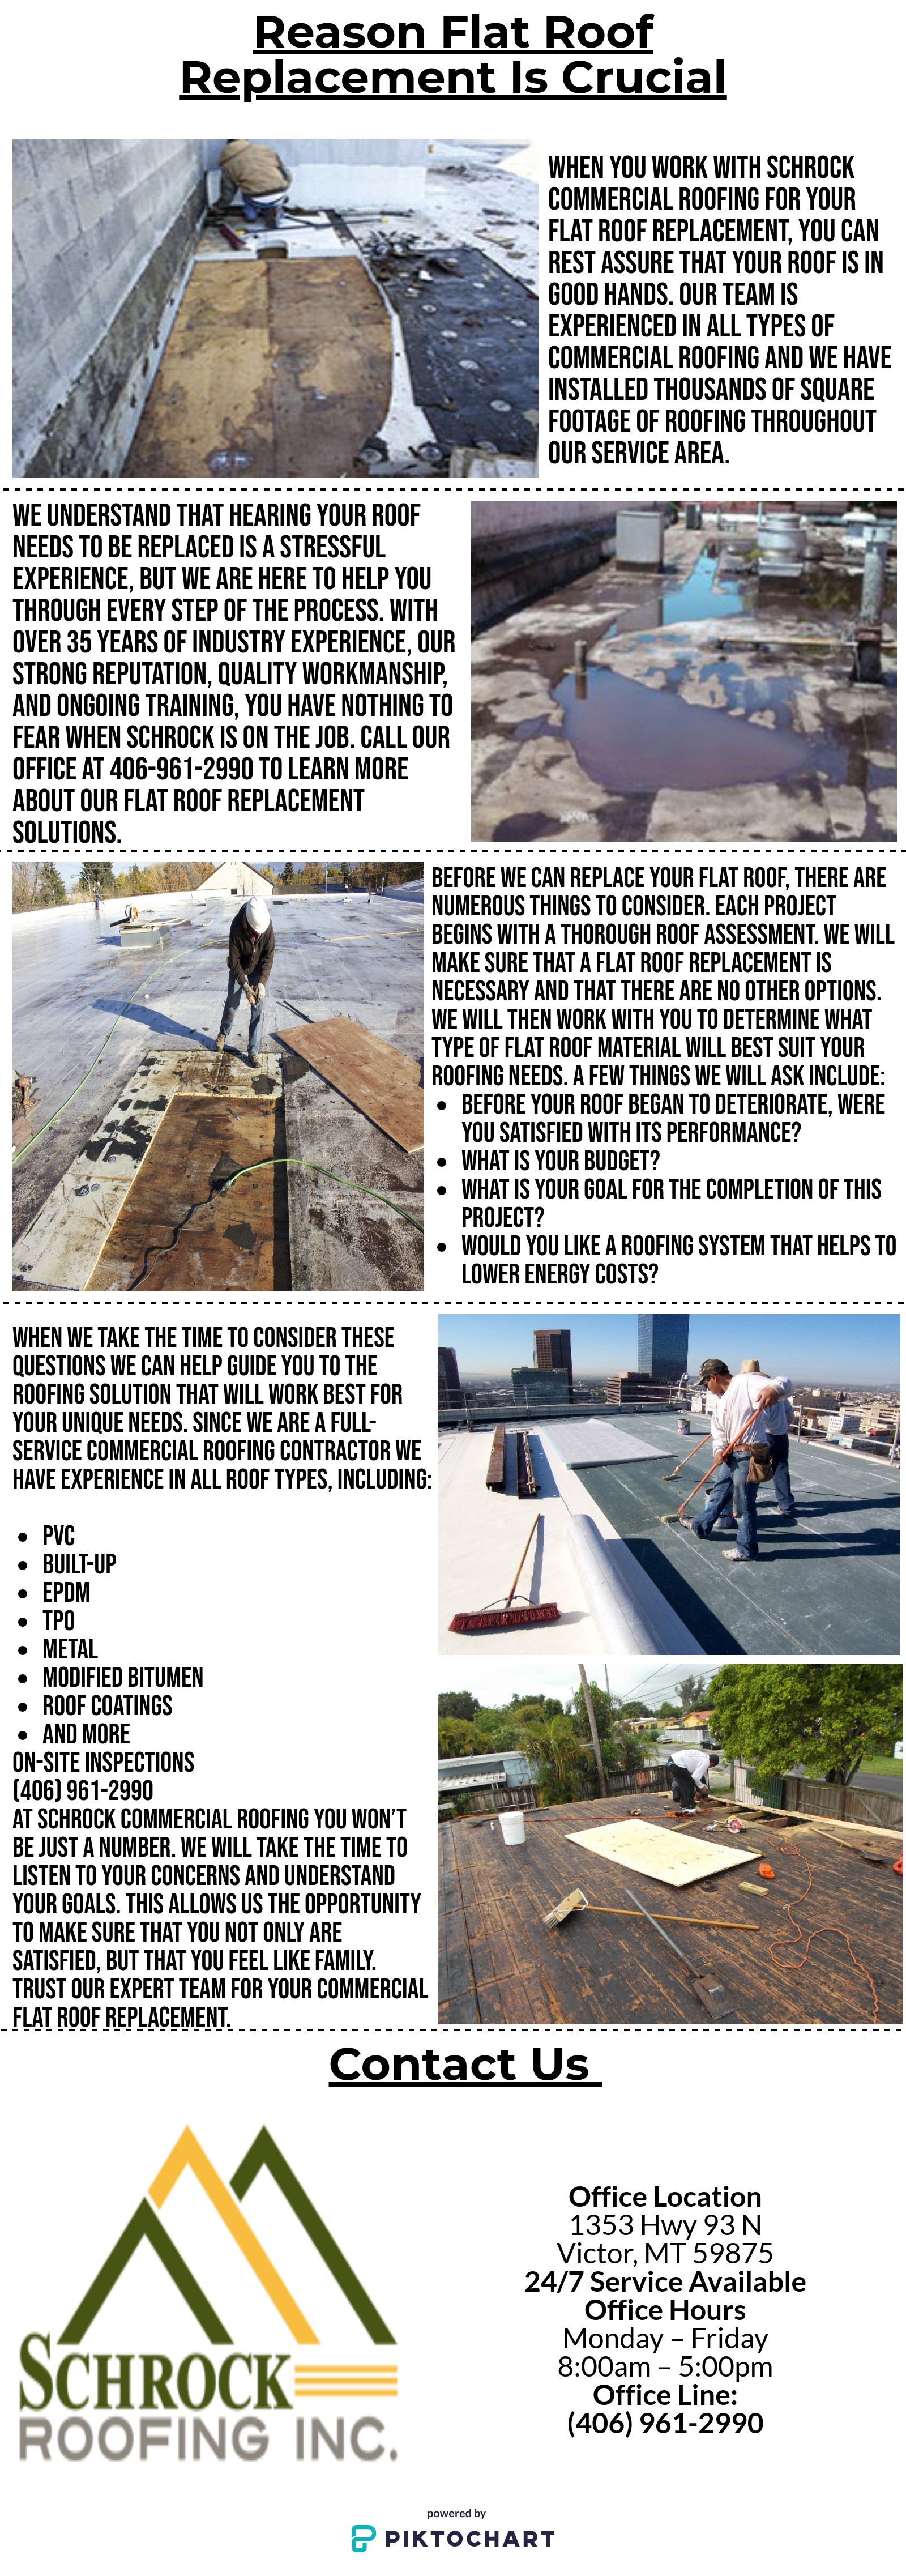 Flat Roof Replacement Hershey Pa Flat Roof Replacement Flat Roof Commercial Roofing Systems